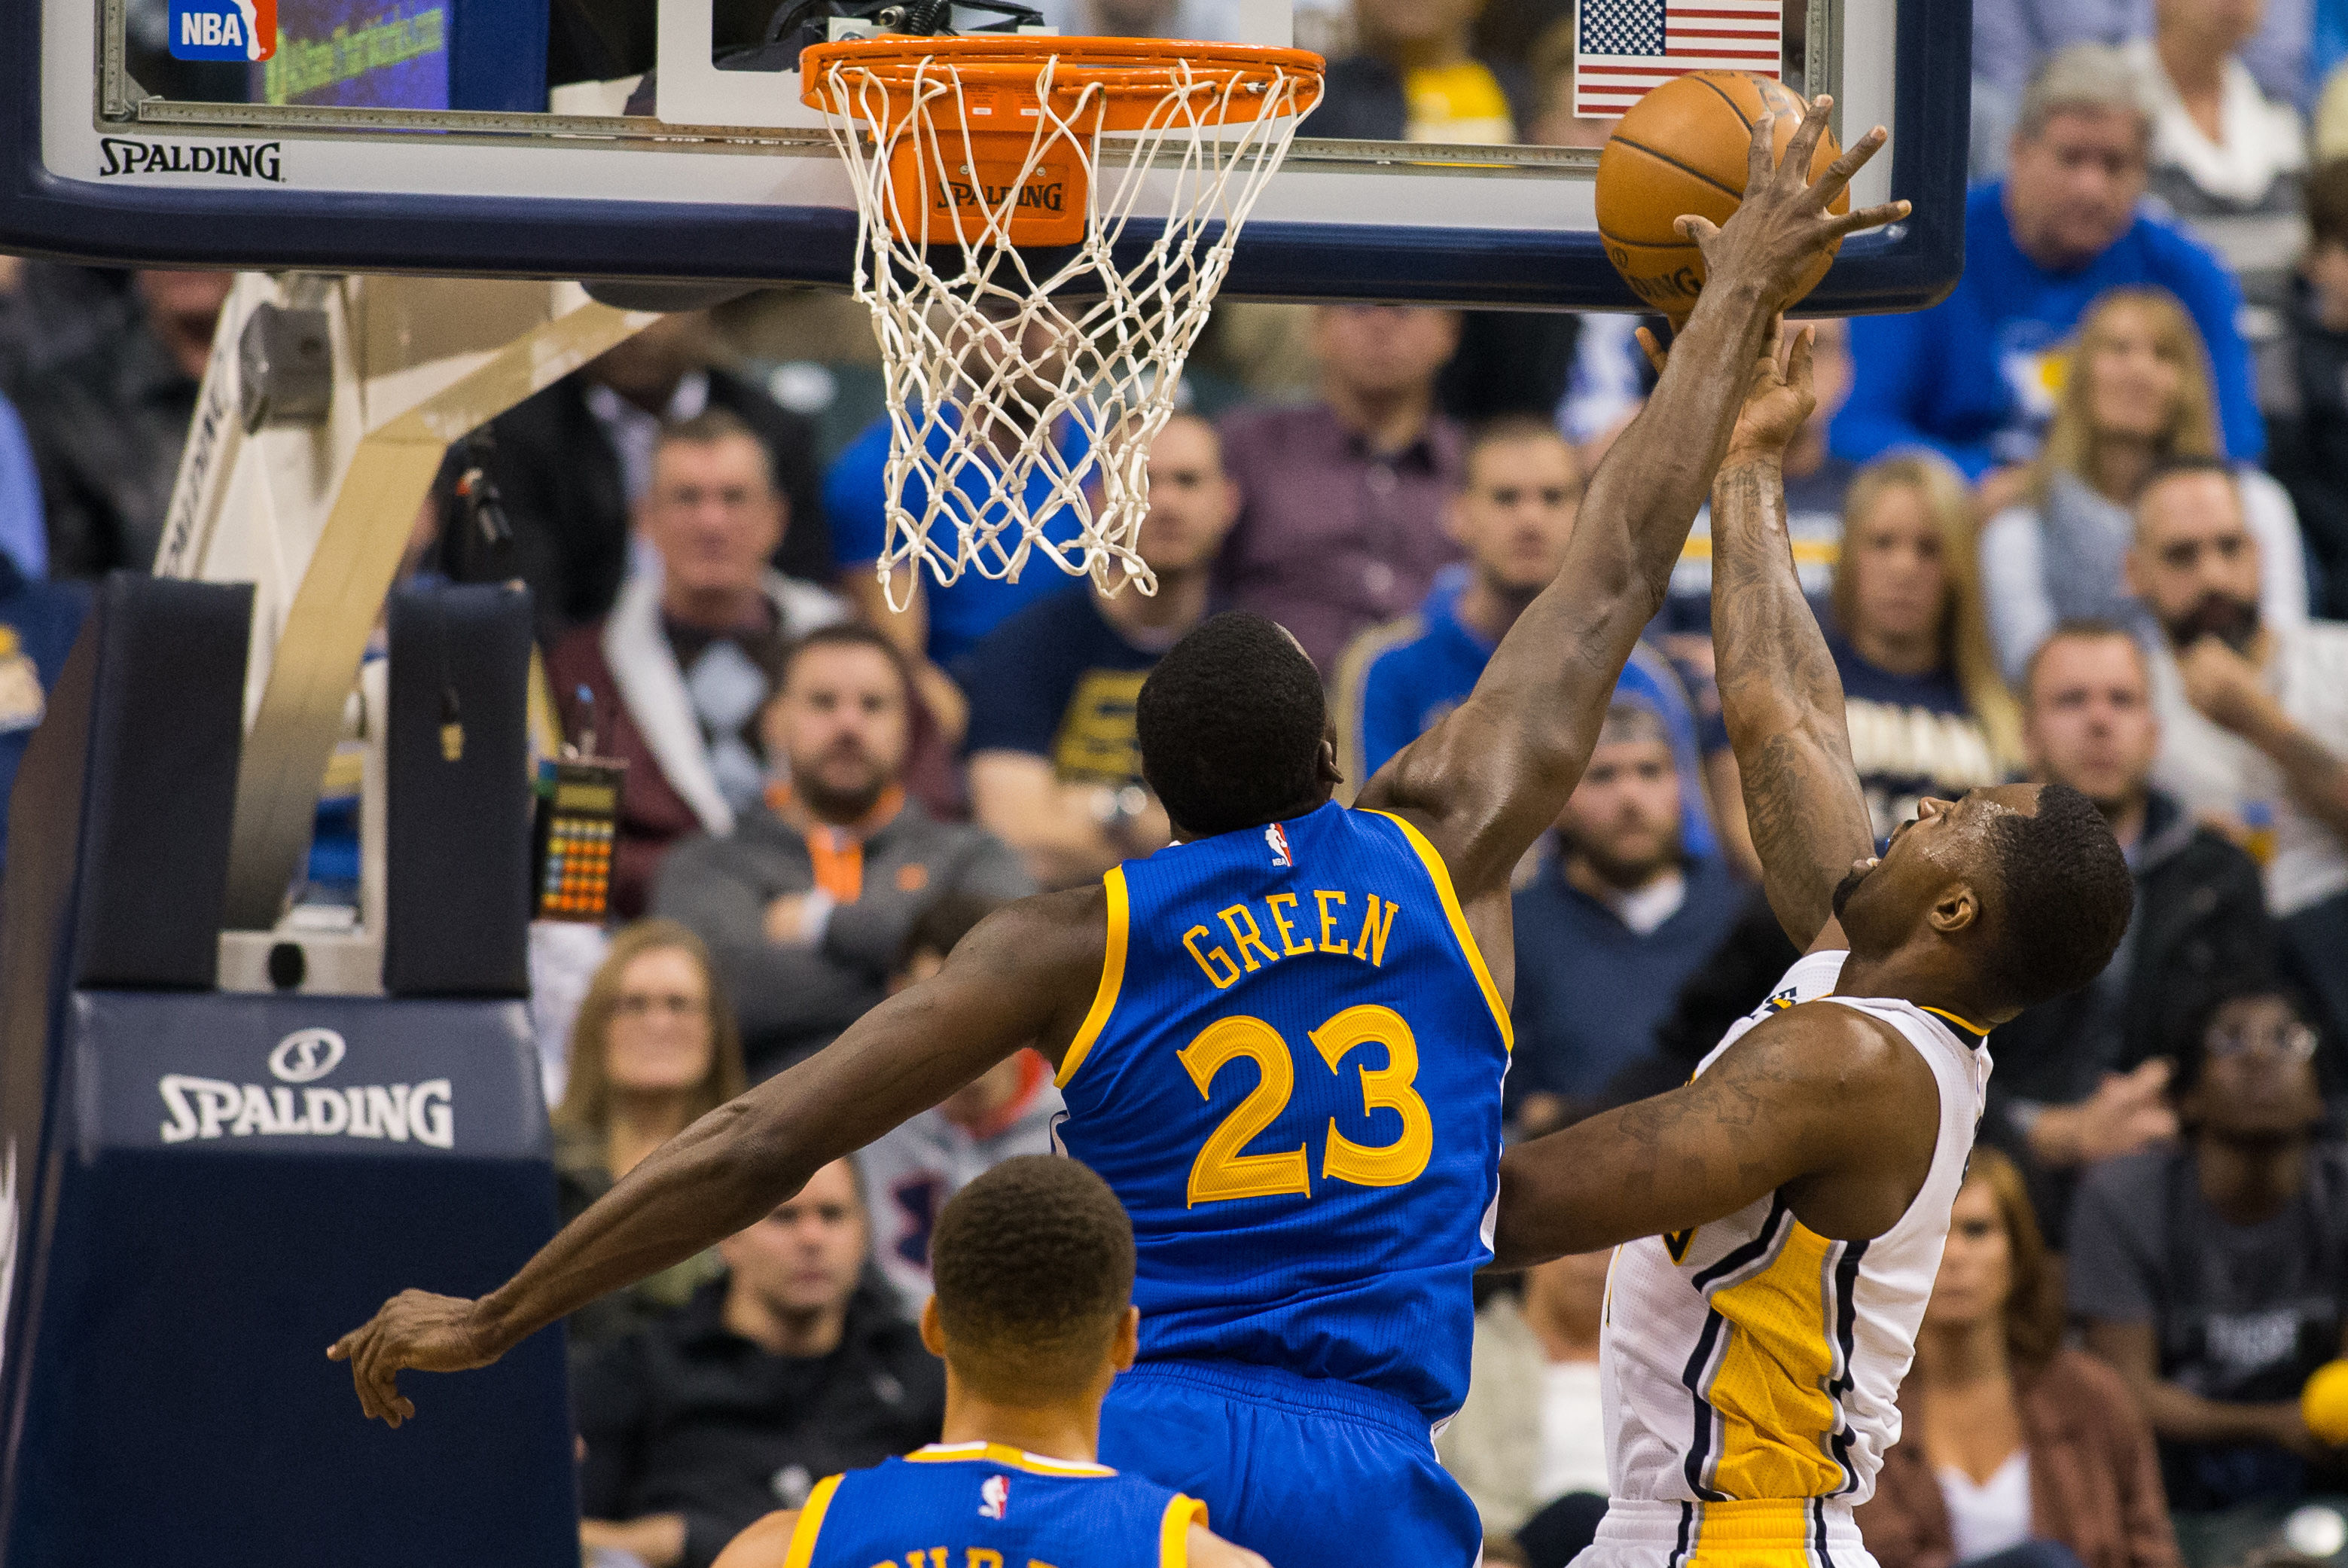 Nov 21, 2016; Indianapolis, IN, USA; Golden State Warriors forward Draymond Green (23) blocks the shot of Indiana Pacers guard Rodney Stuckey (2) in the first half of the game at Bankers Life Fieldhouse. Golden State beat Indiana 120-83. Mandatory Credit: Trevor Ruszkowski-USA TODAY Sports